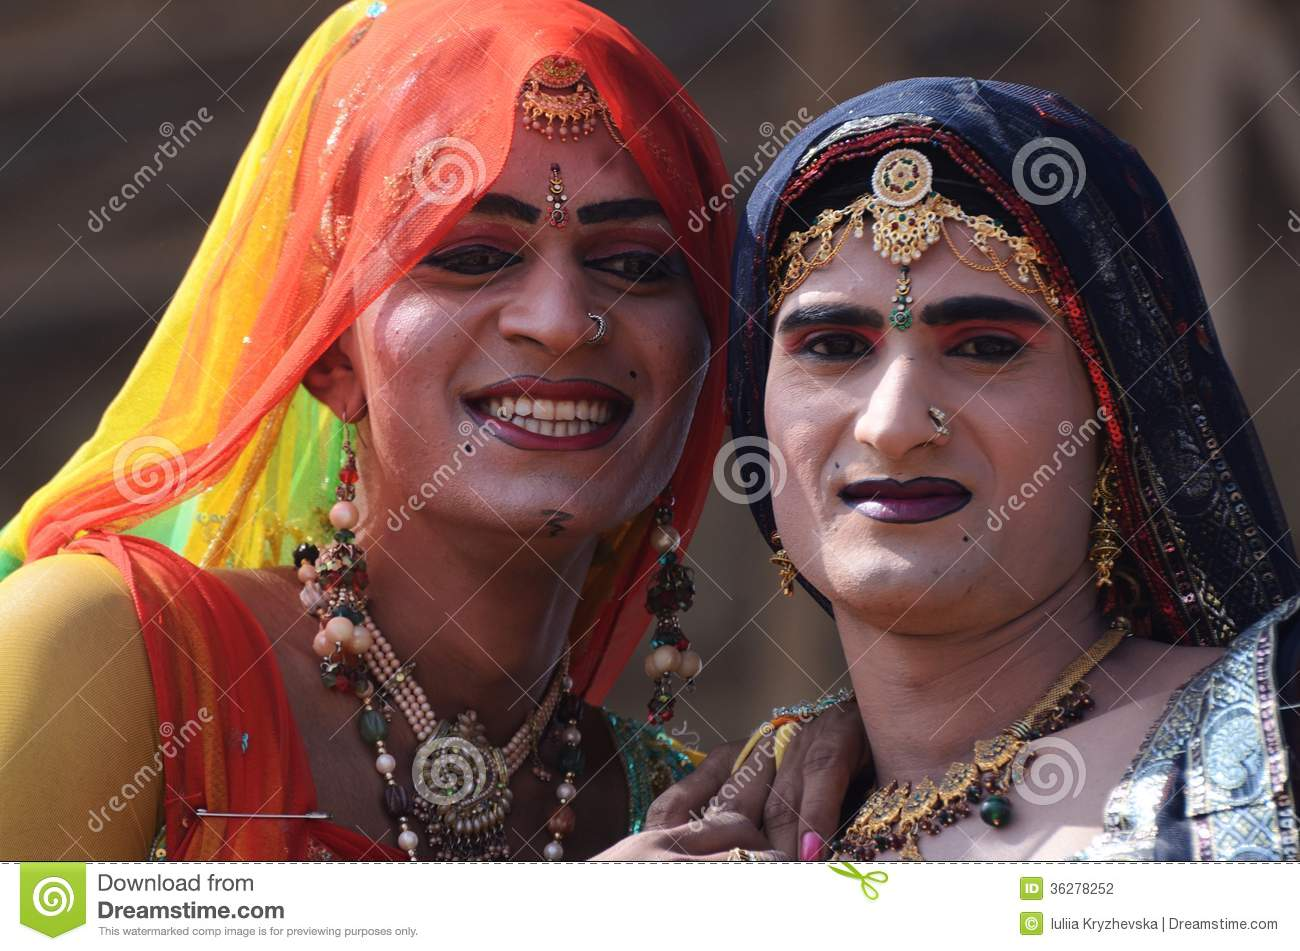 the hijras of india View hijras and gender in india research papers on academiaedu for free.